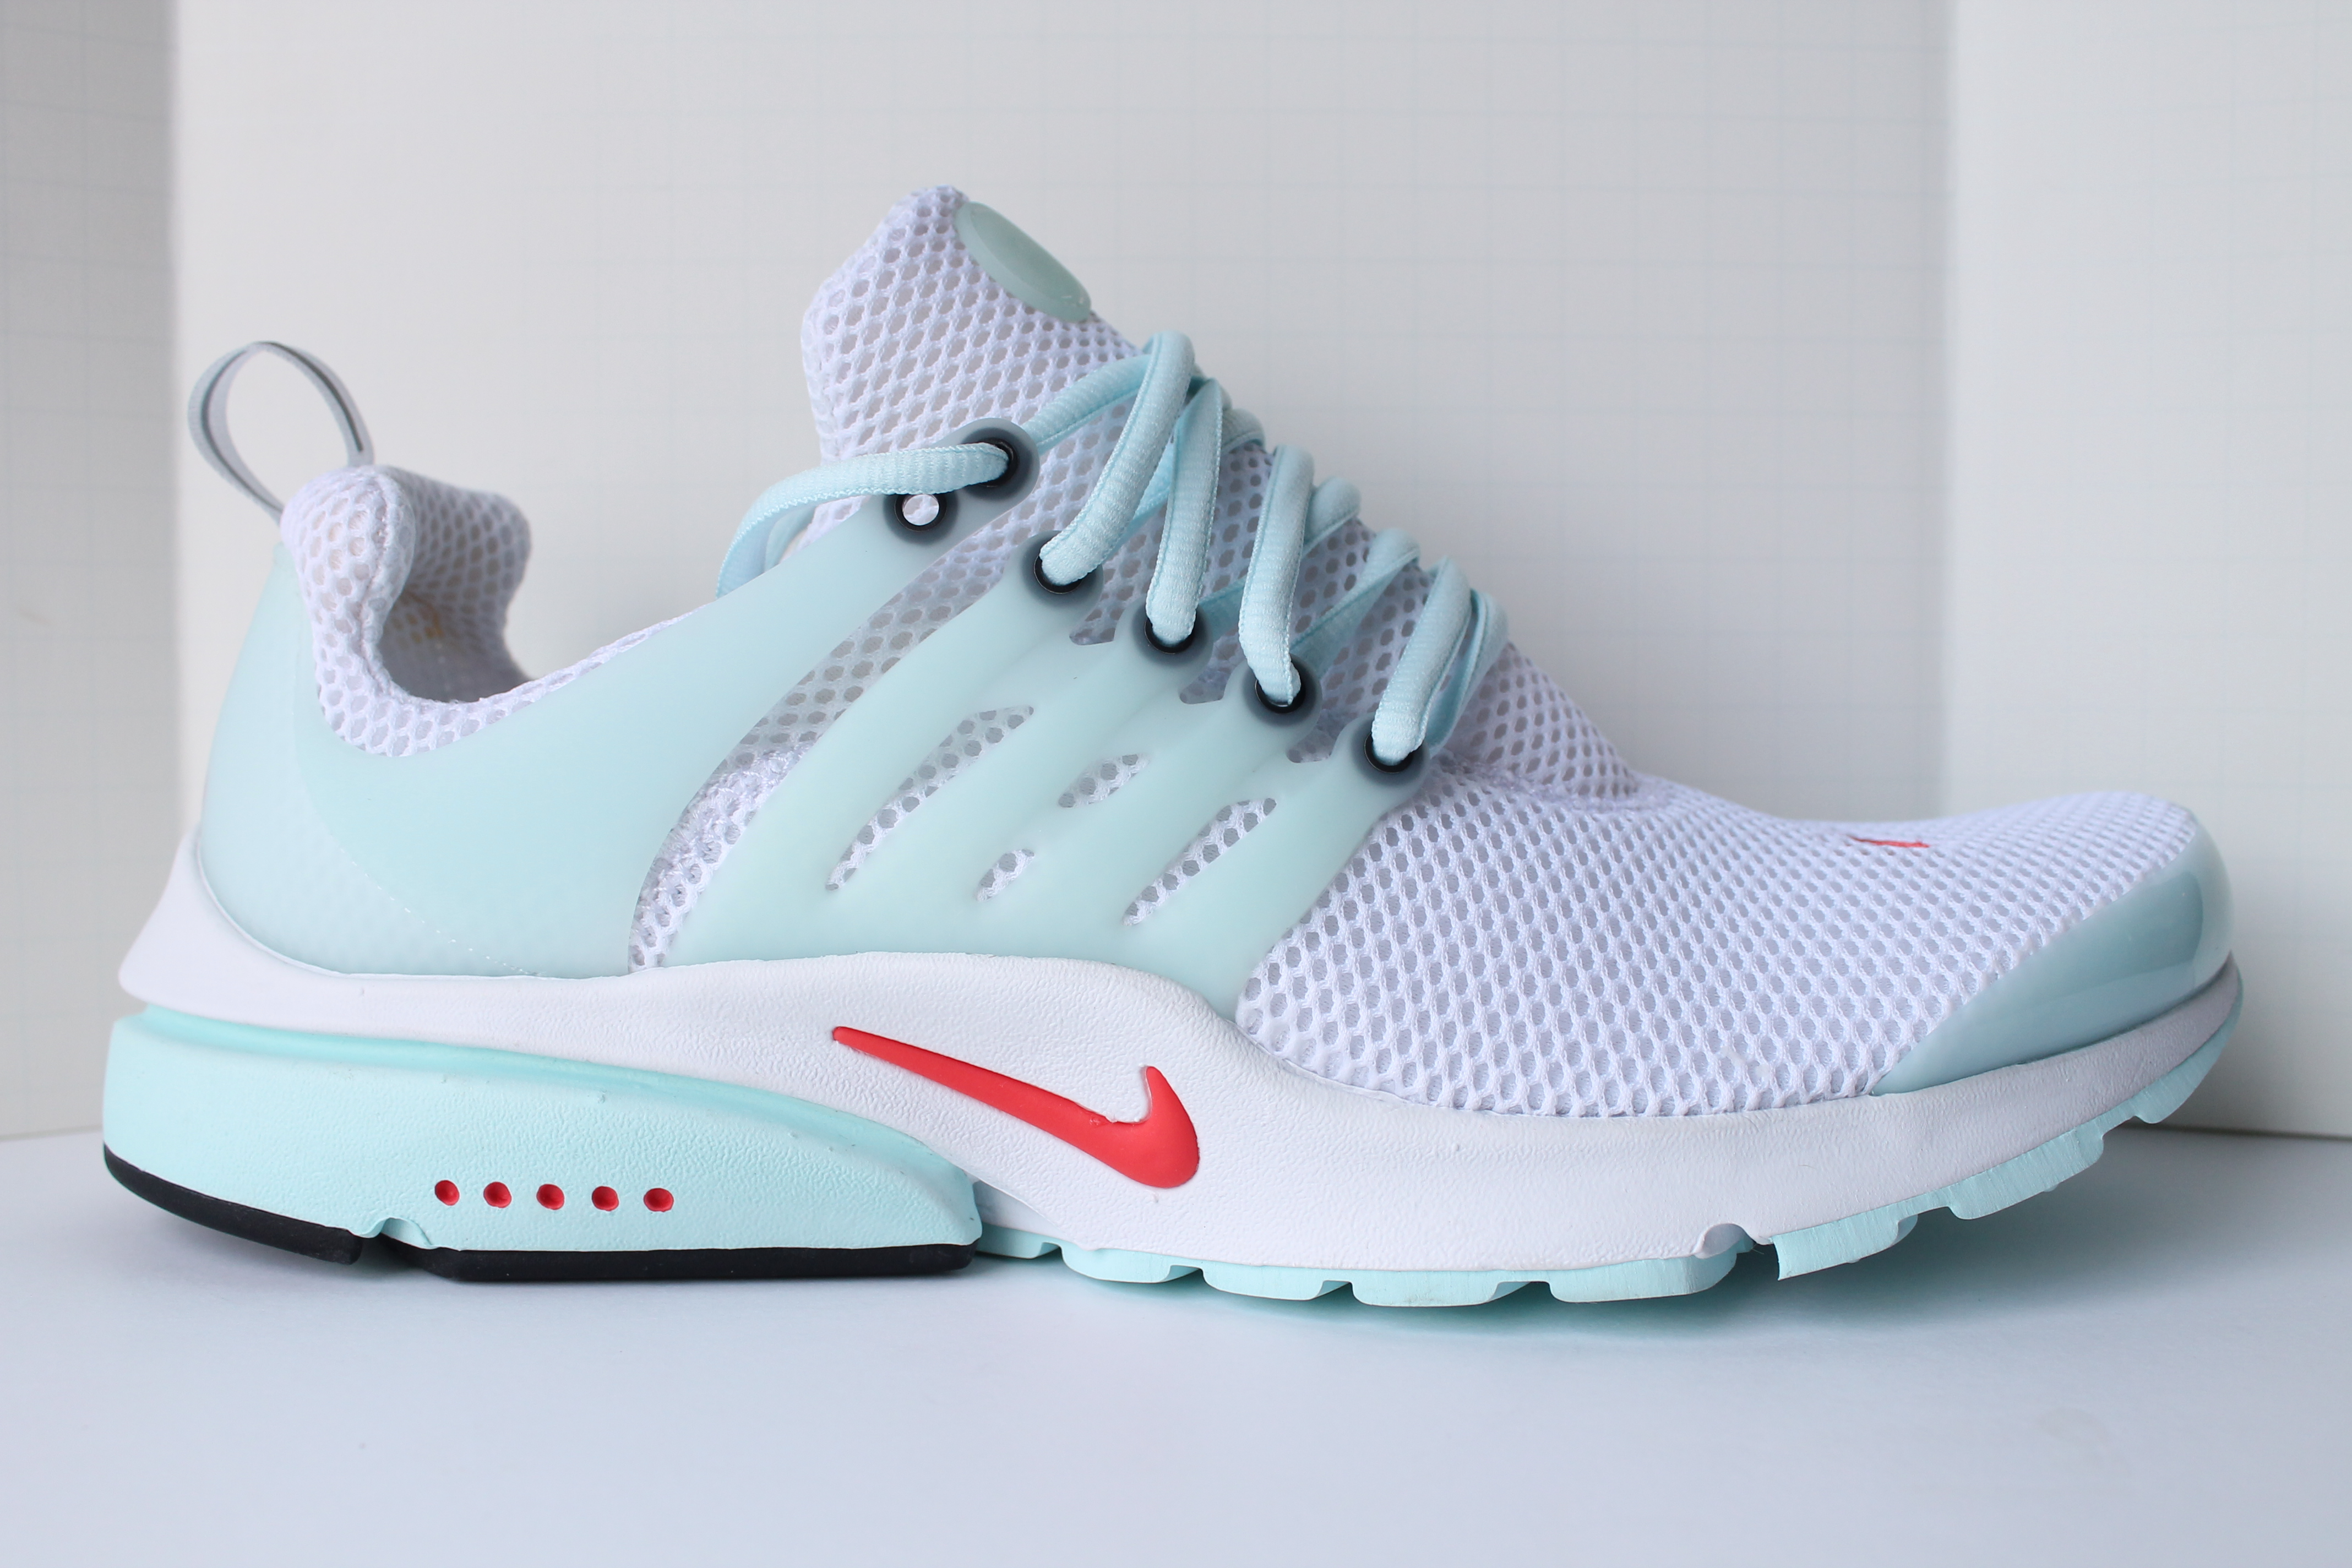 differently new images of best website Nike Air Presto QS Unholy Cumulus